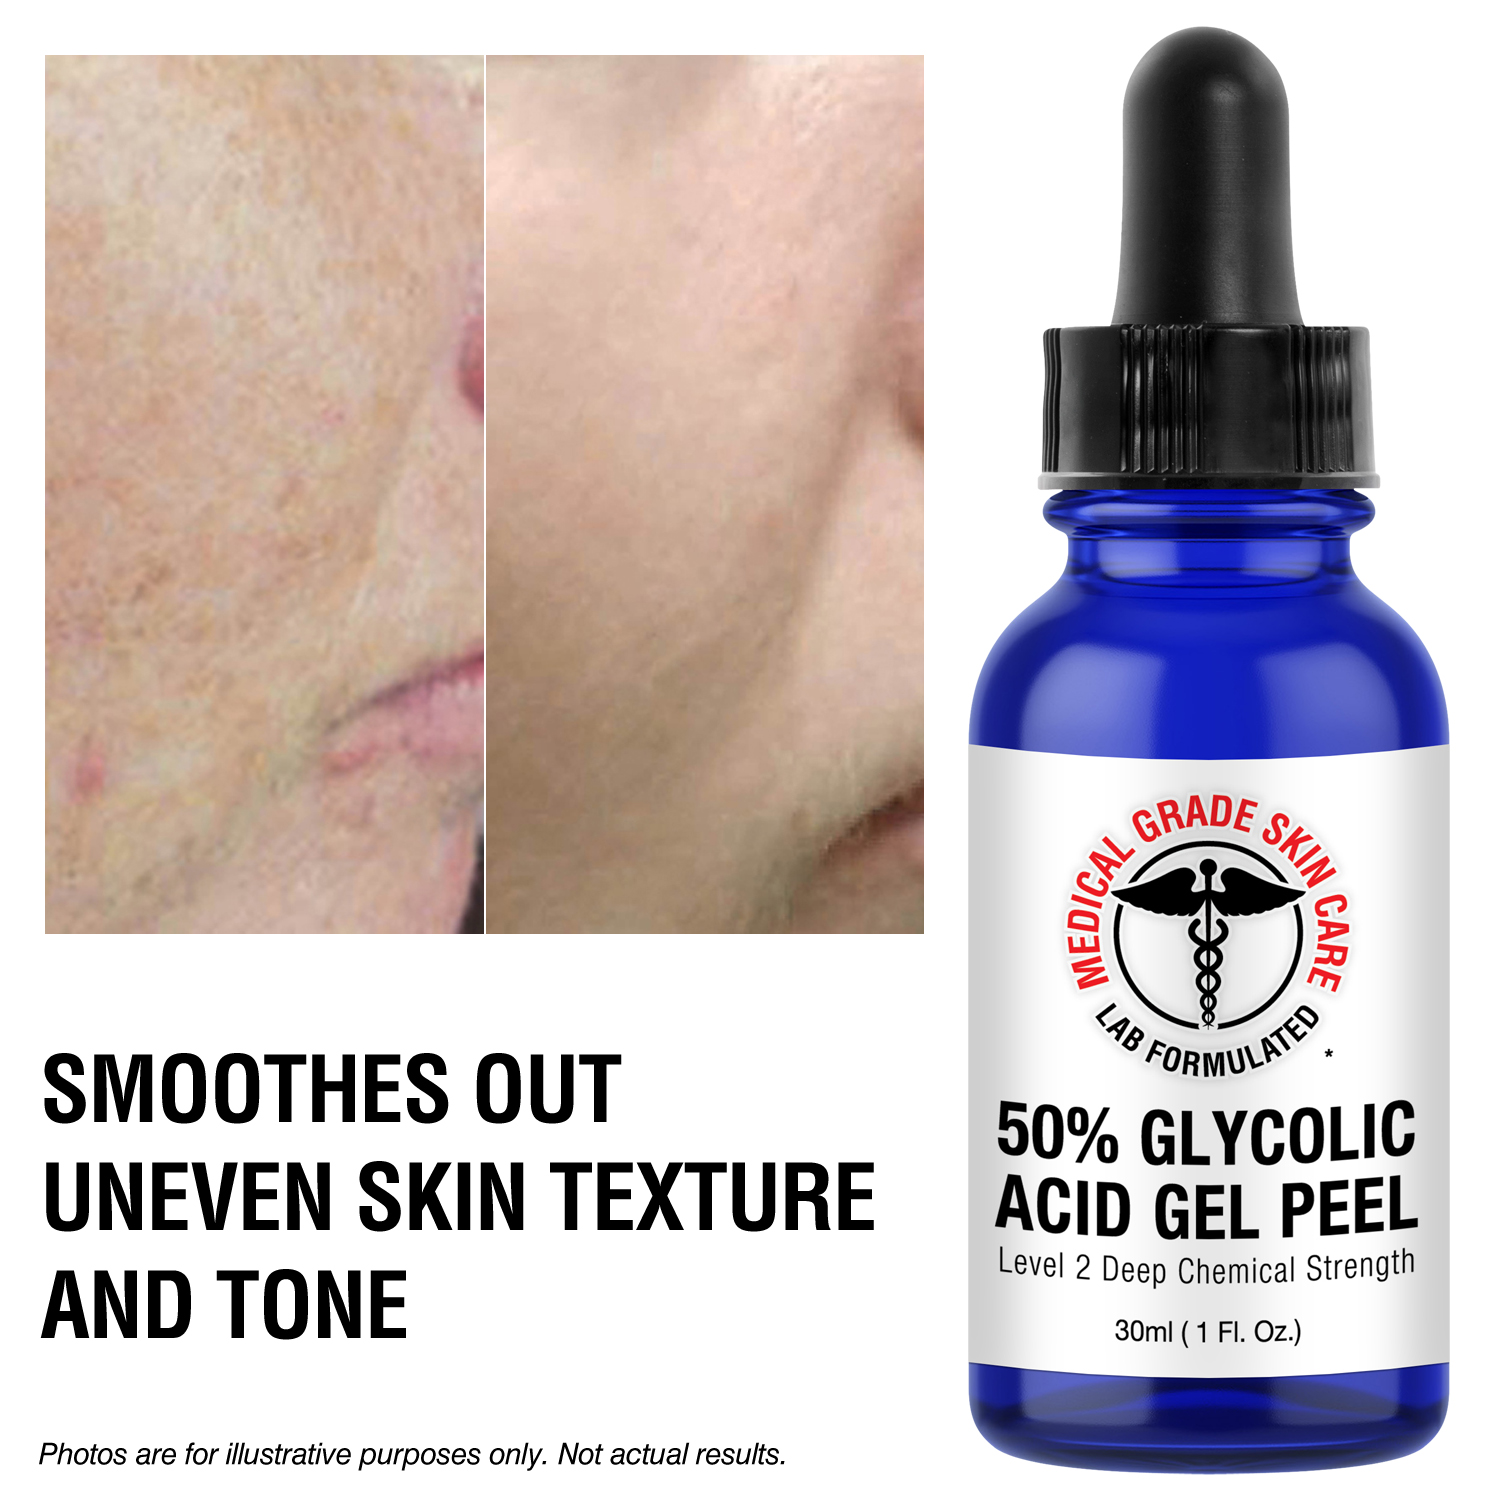 Glycolic facial gel